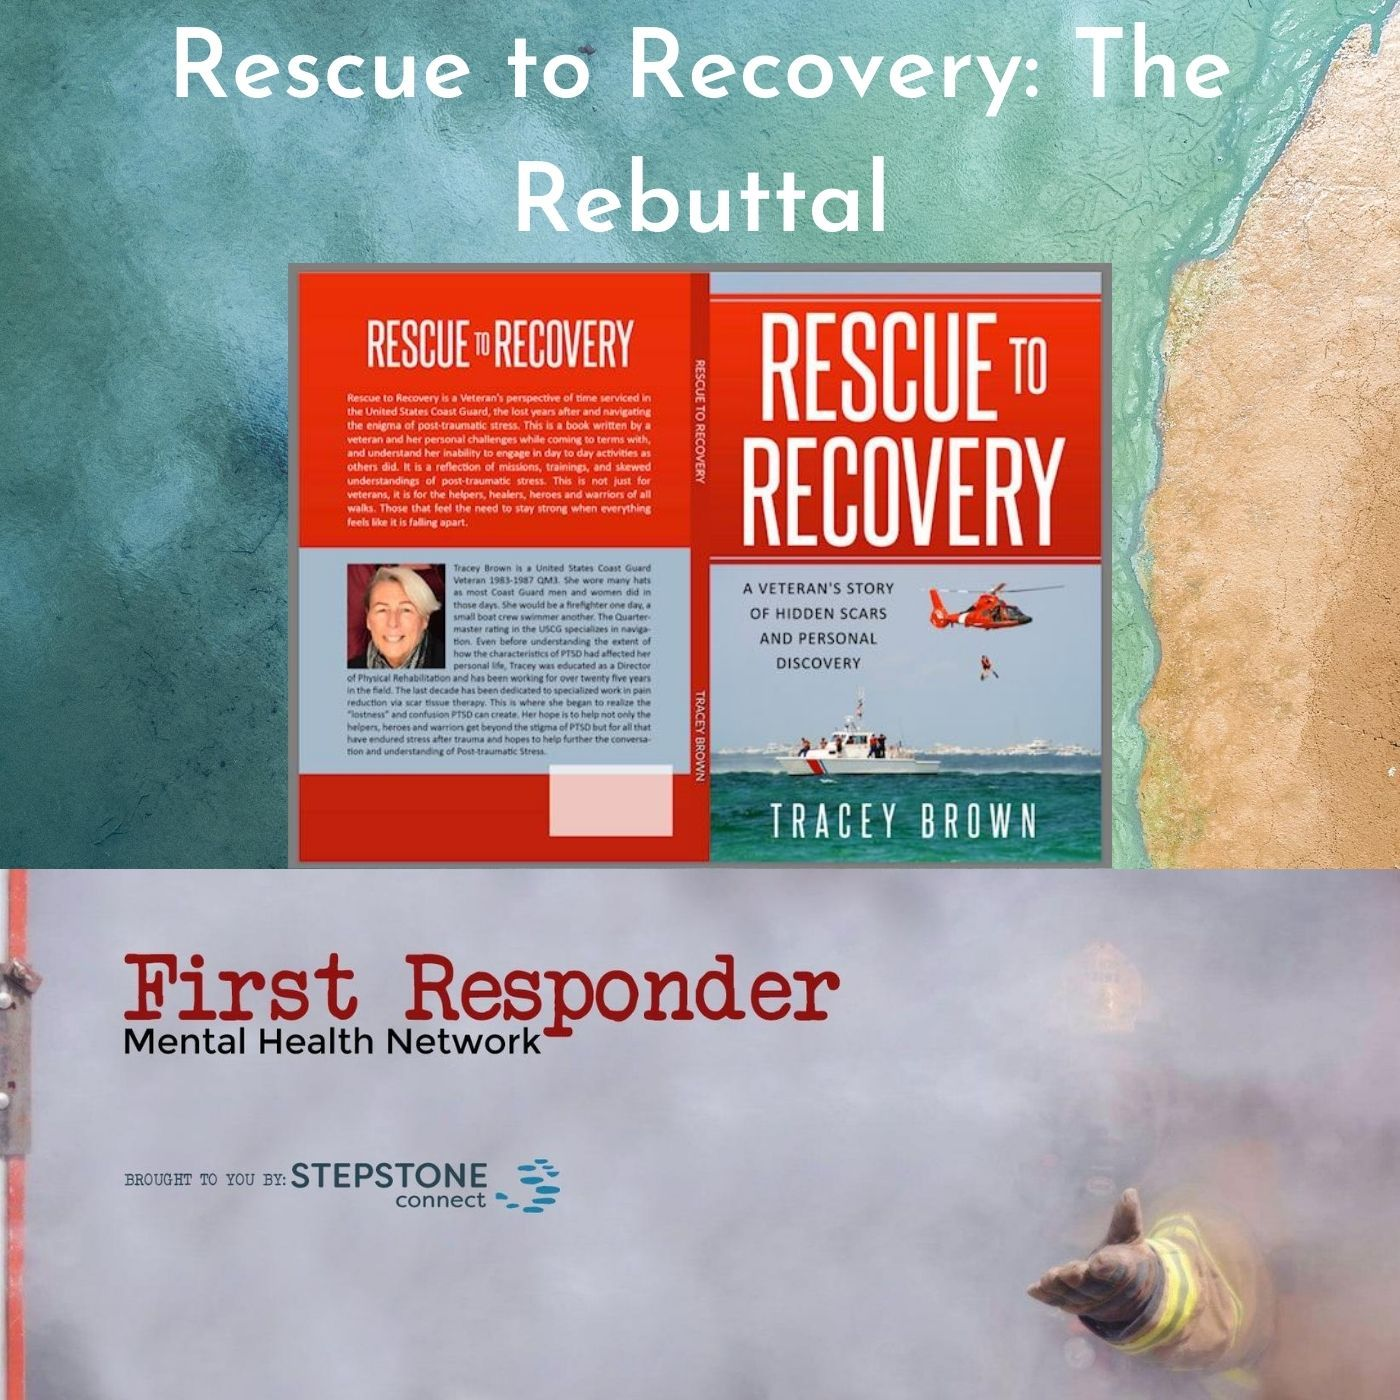 Mental Health News Radio - Rescue to Recovery: The Rebuttal